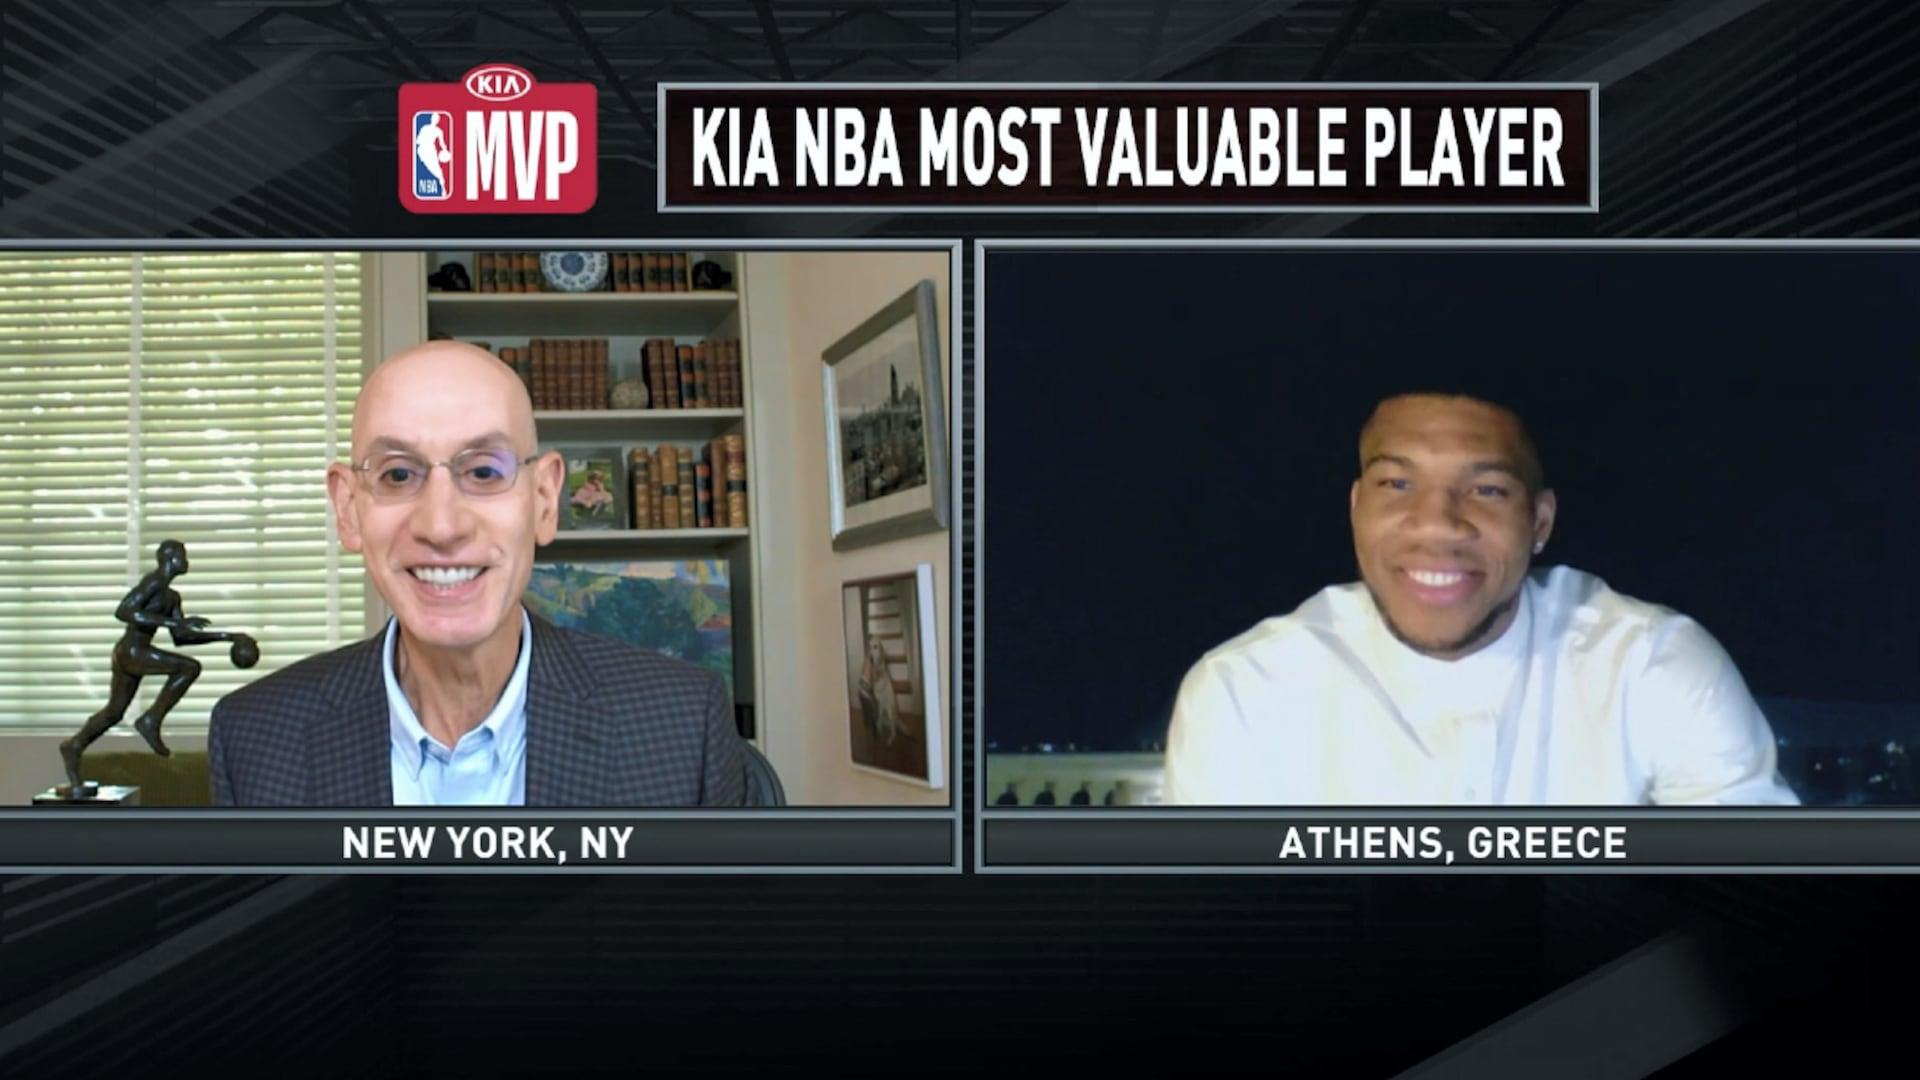 As MVP awards pile up, championships continue to elude Giannis Antetokounmpo